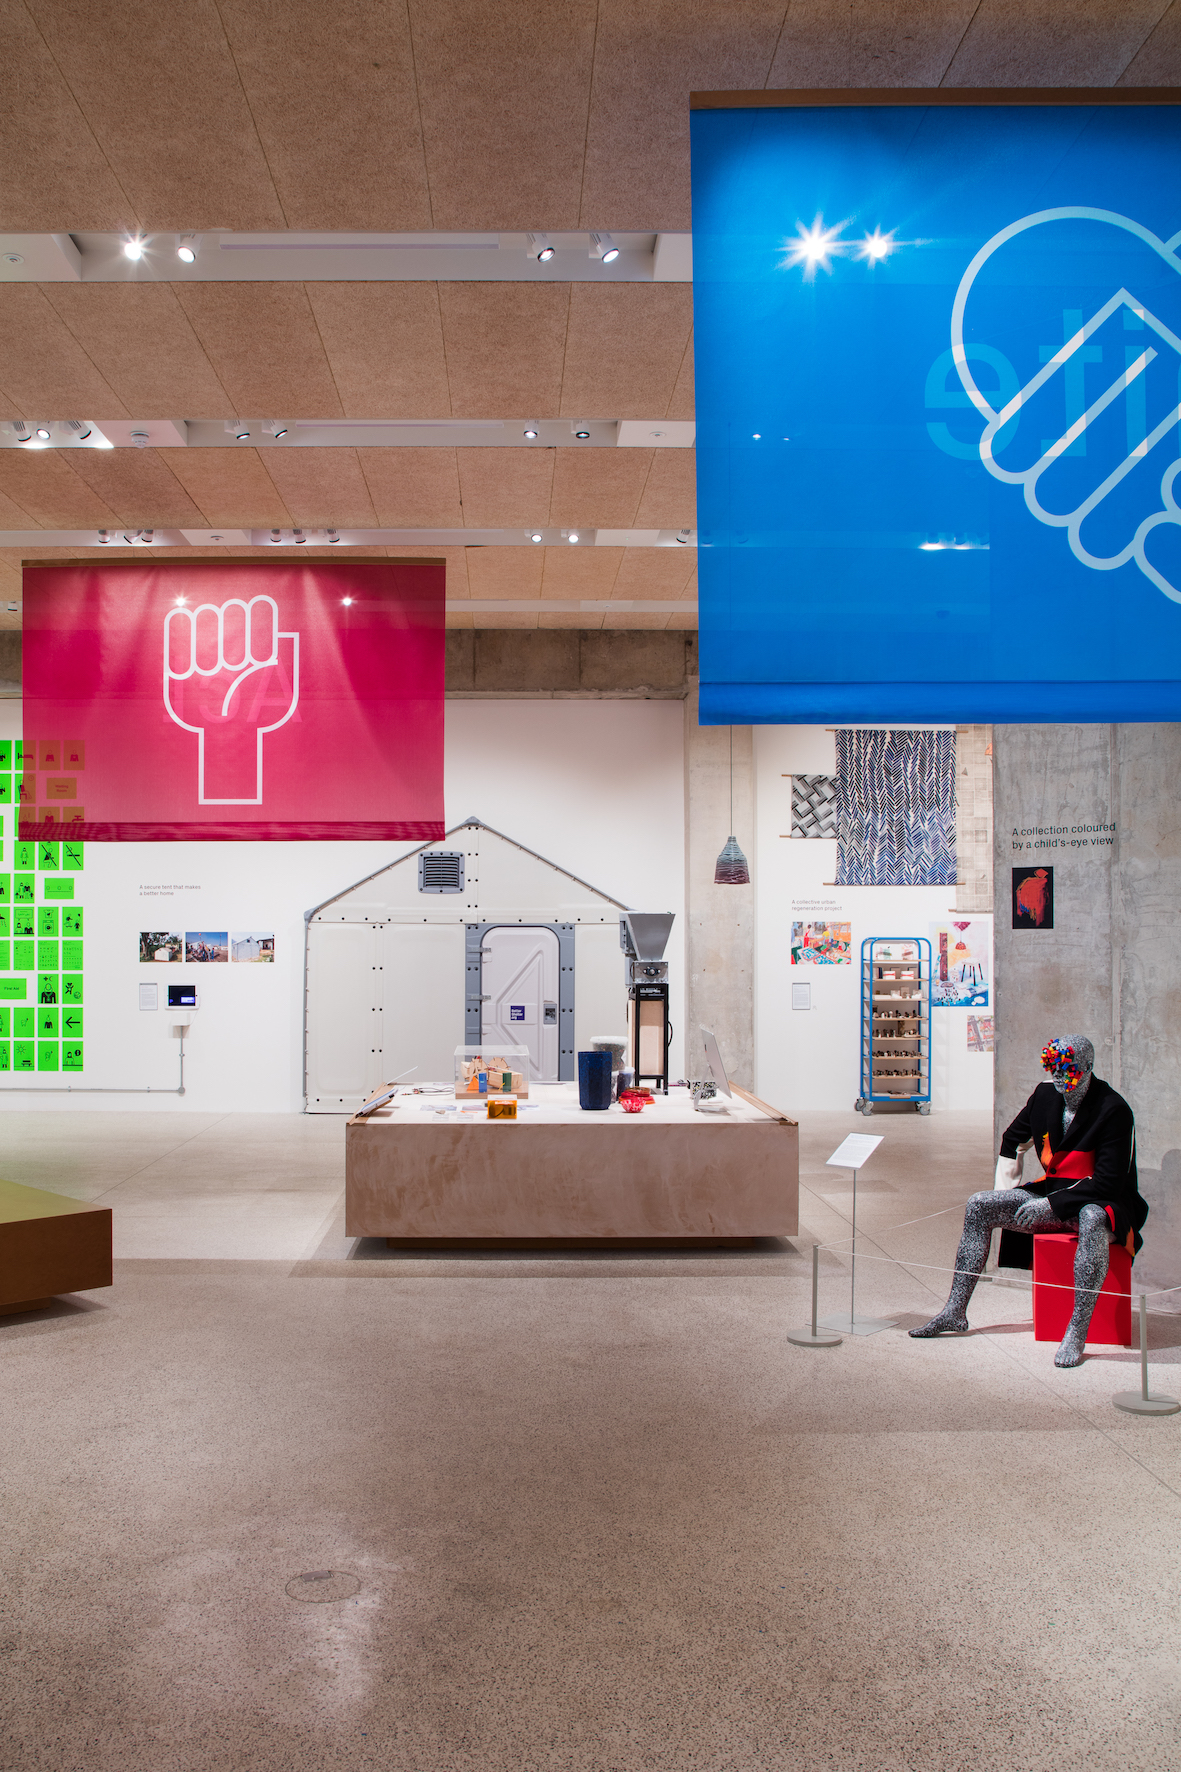 The exhibition is held in the recently renovated Commonwealth Institute building in Kensington, London | © Luke Hayes